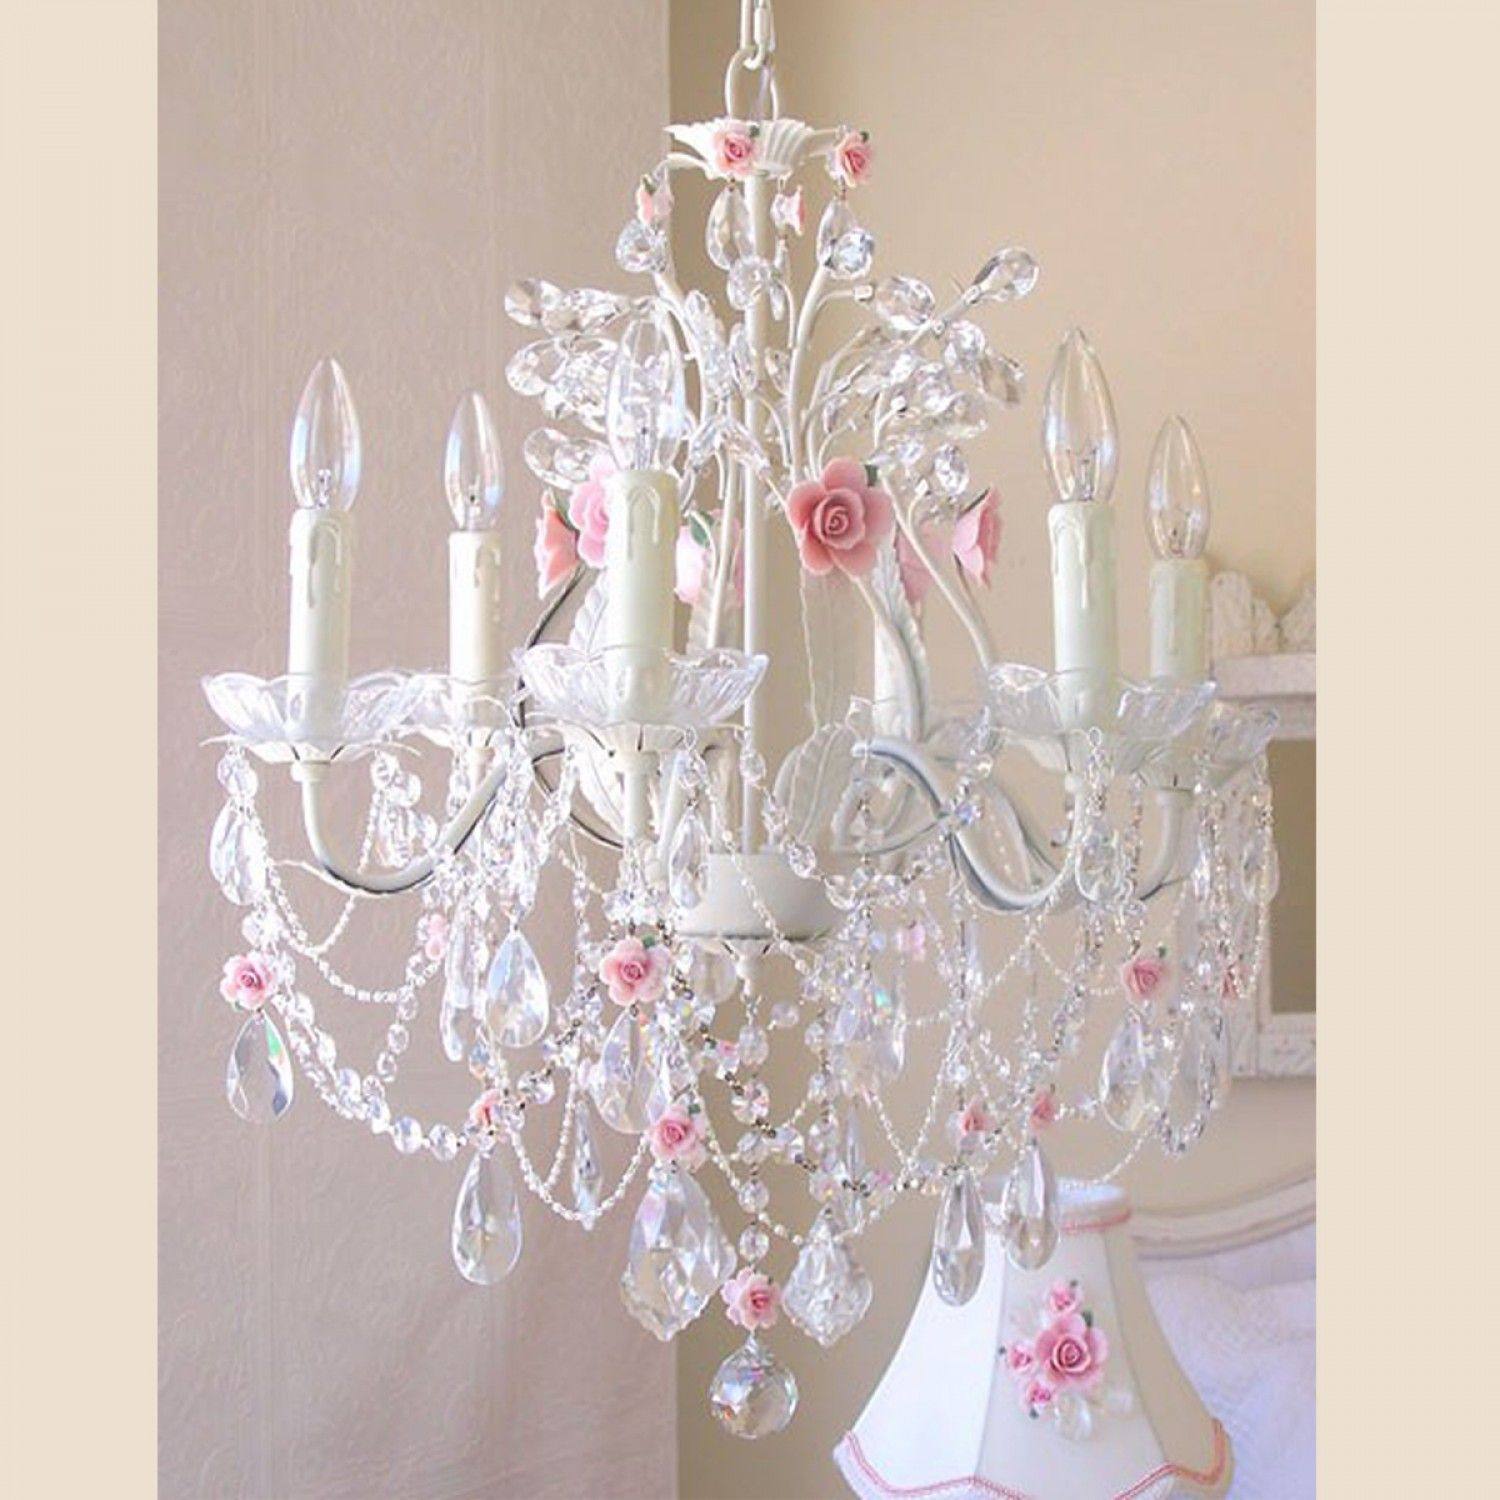 Exquisite rose 6 light crystal chandelier with pink porcelain exquisite rose 6 light crystal chandelier with pink porcelain roses 74900 freeshipping thebellacottage arubaitofo Choice Image